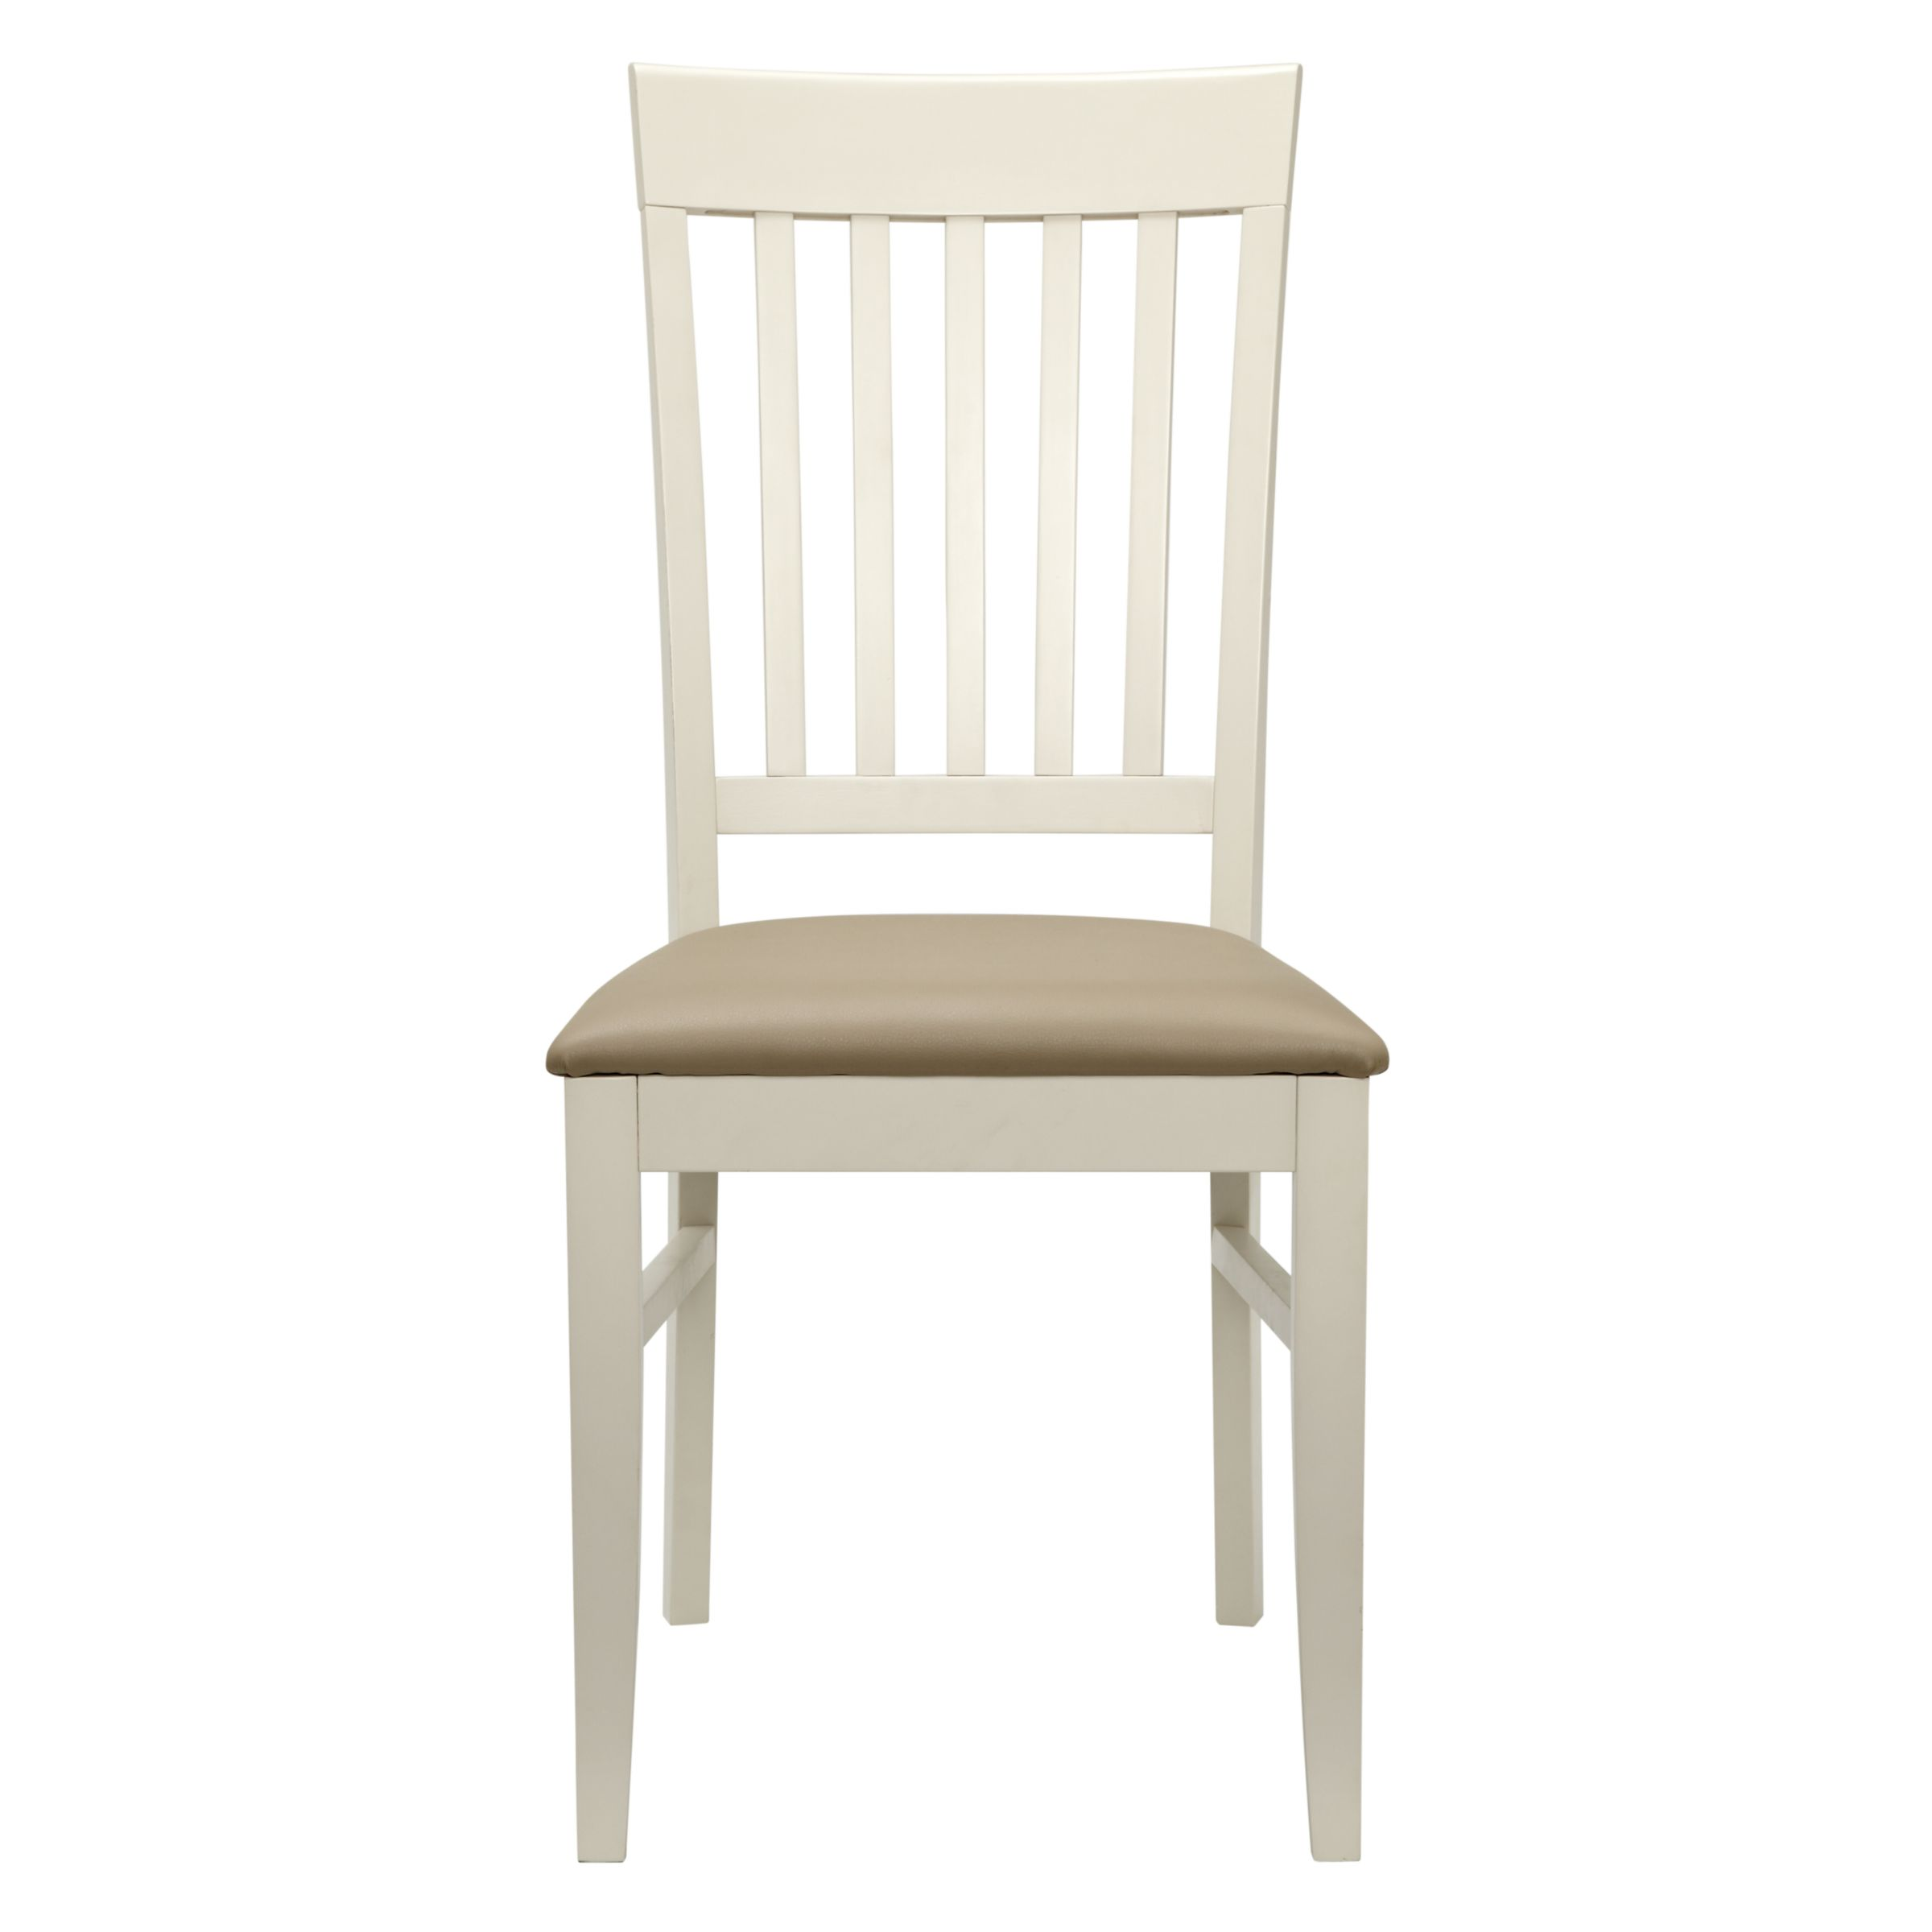 alba slat back dining chair target childrens chairs john lewis and partners at